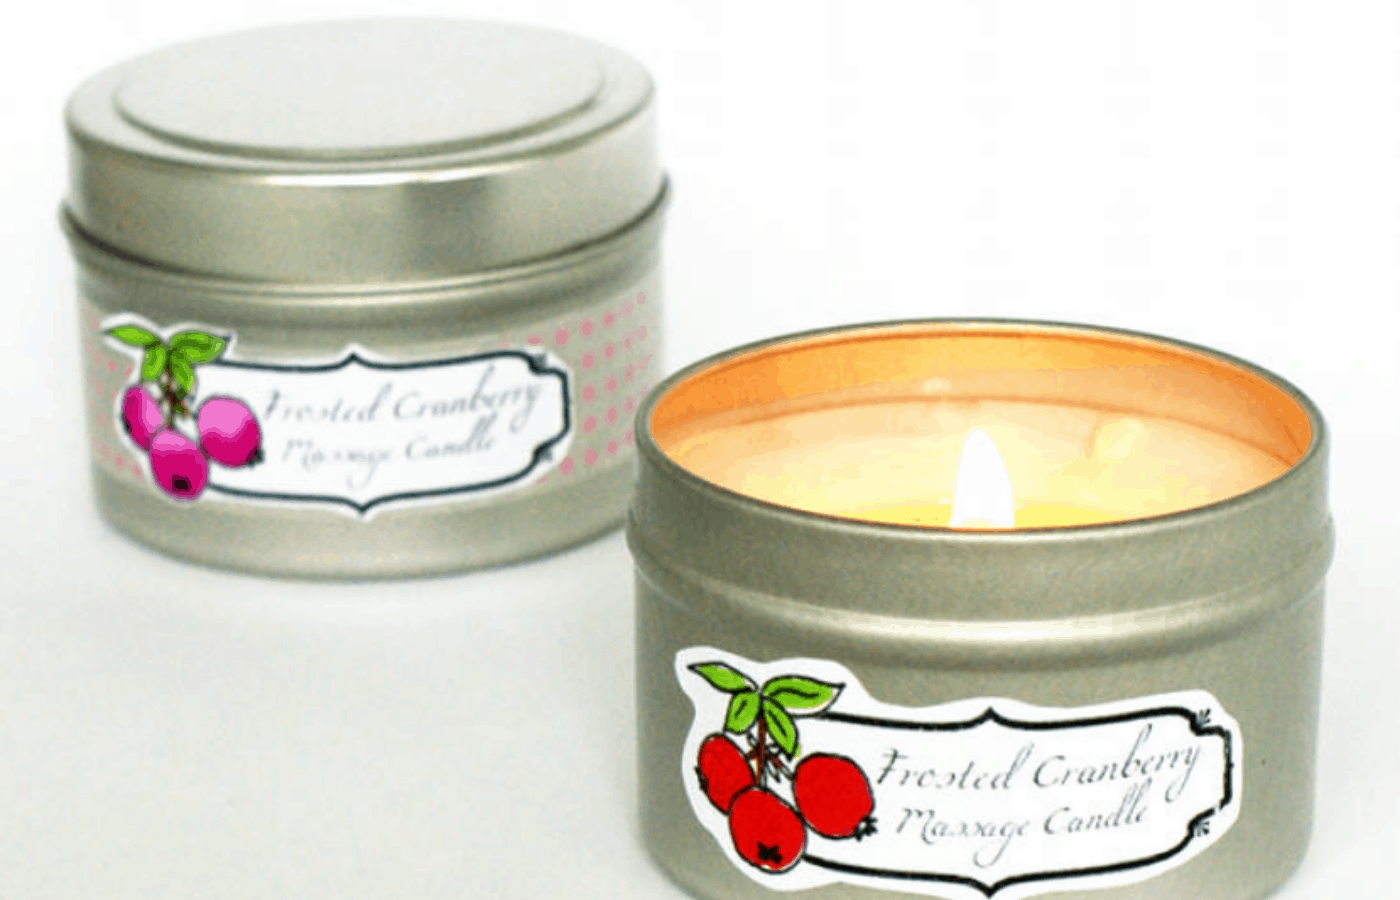 Can Candle Wax Be Used as Lotion